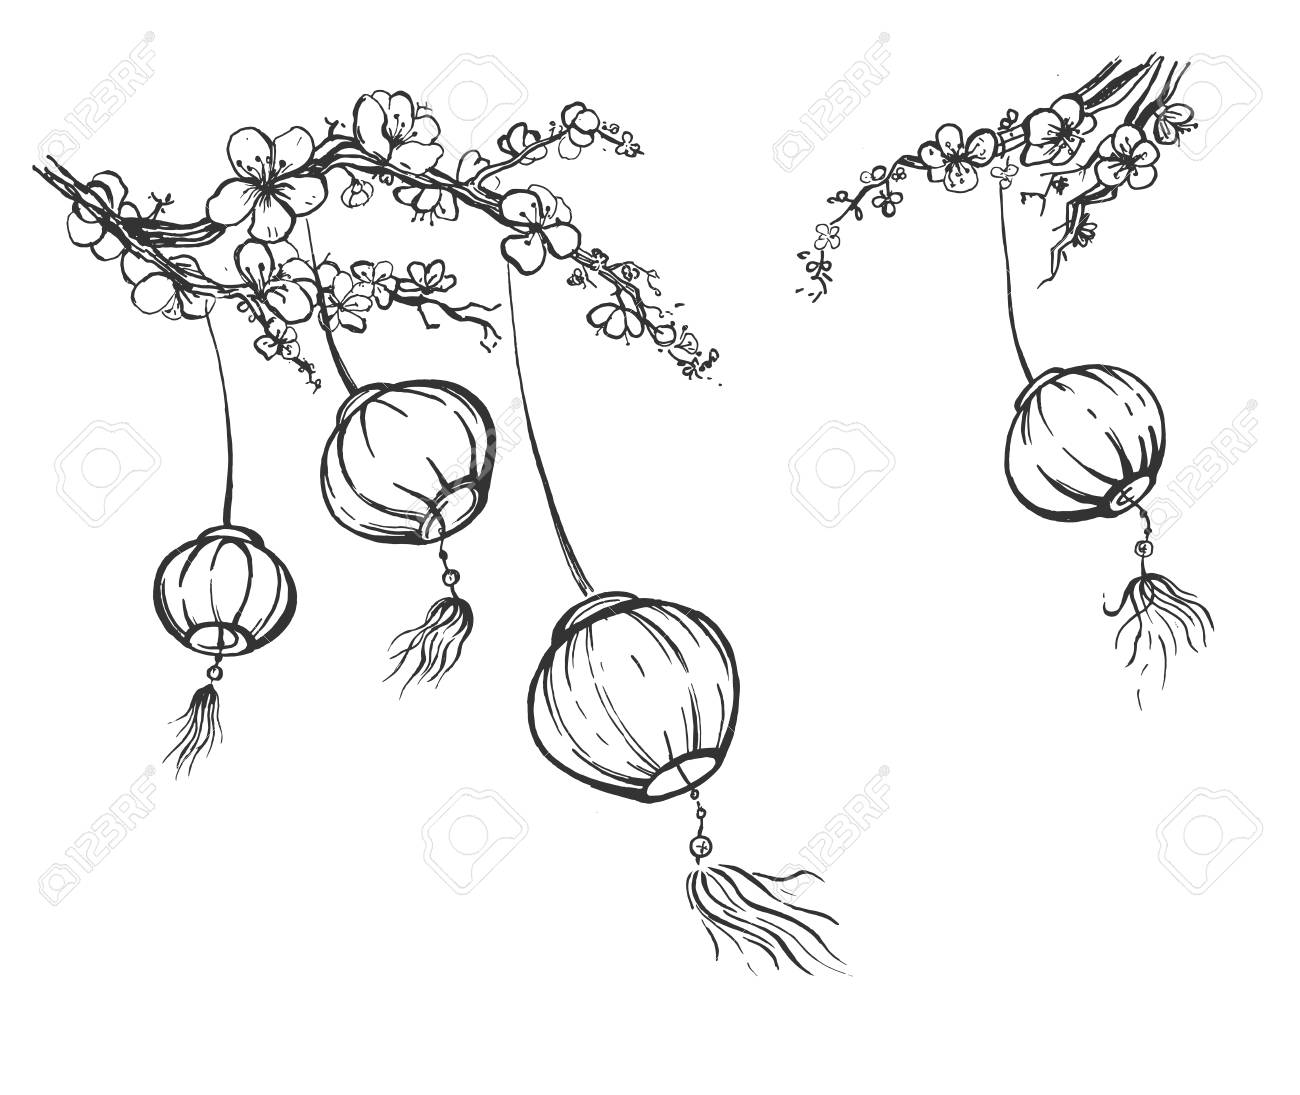 Vector Illustration Of Chinese Festival Sky Lanterns Set Hanging Royalty Free Cliparts Vectors And Stock Illustration Image 122894165